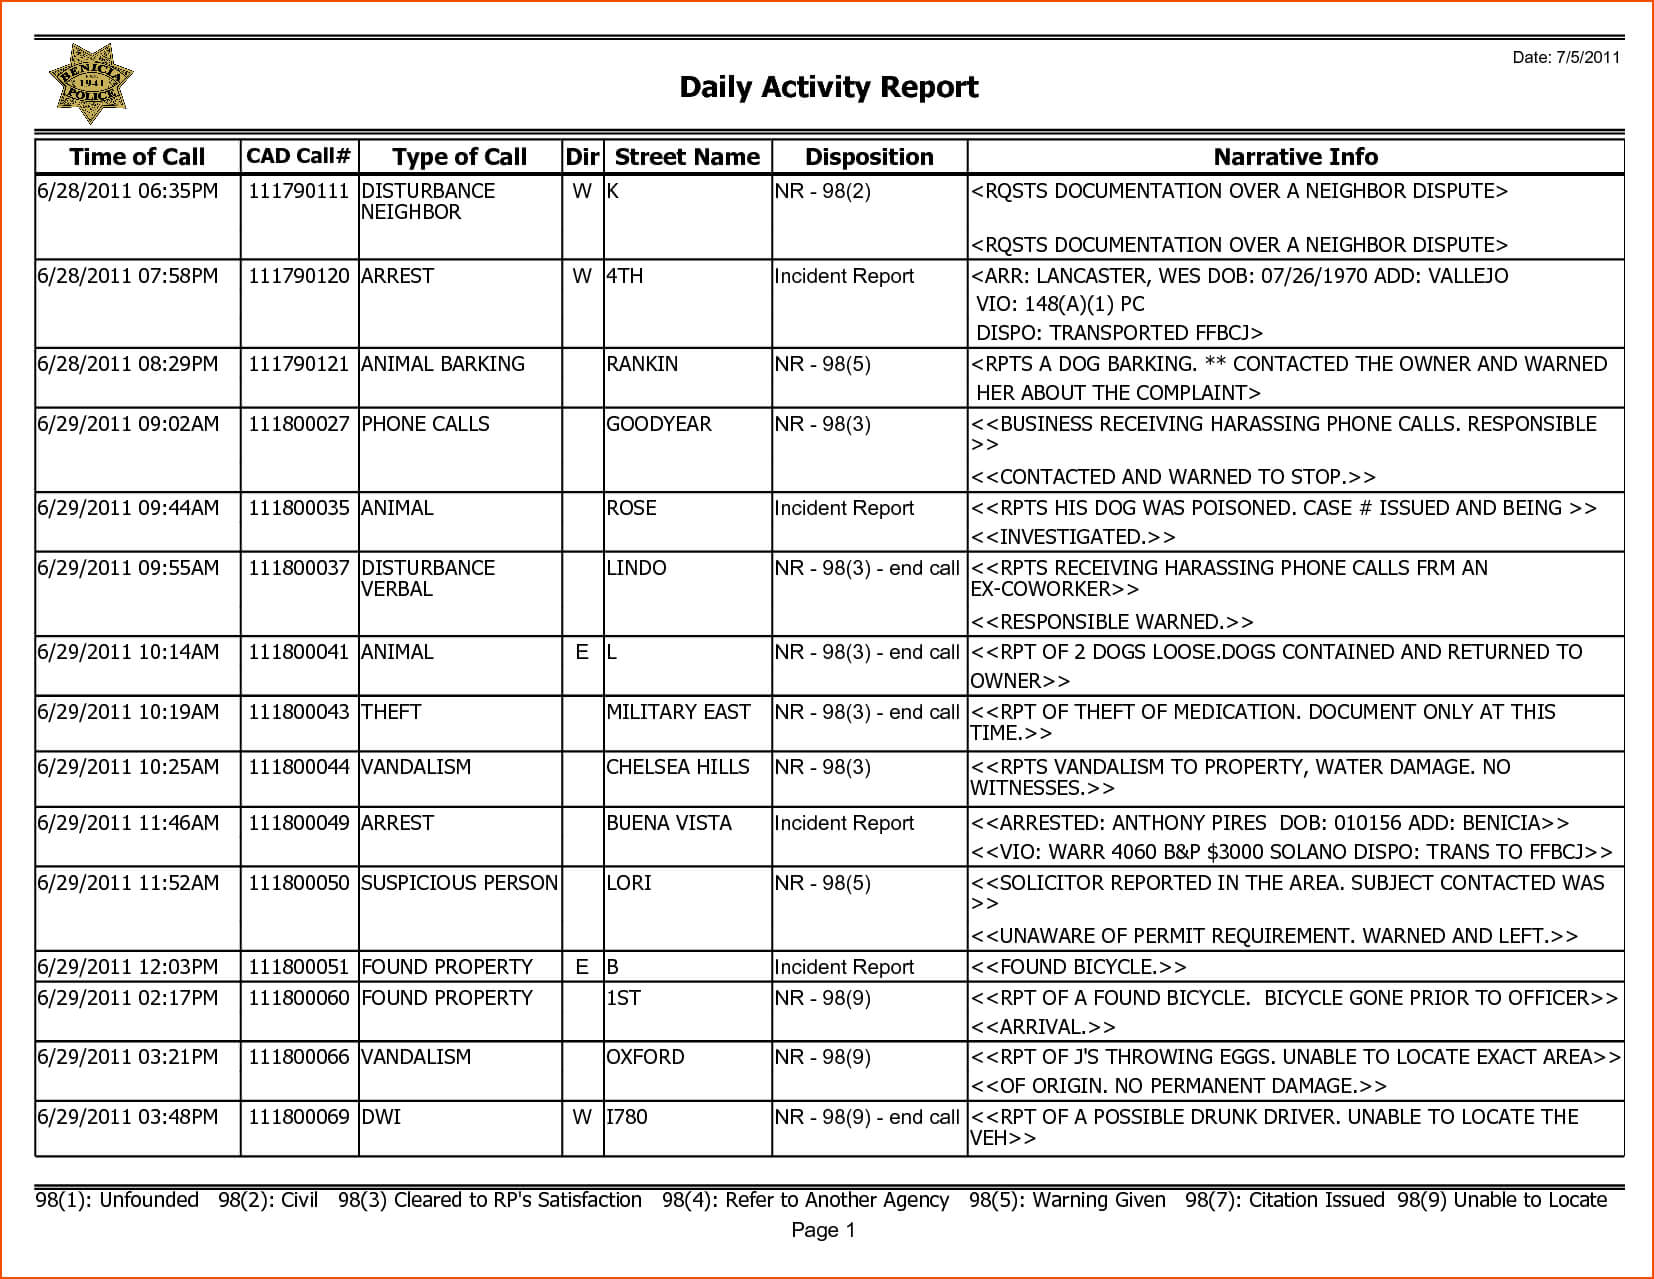 8+ Weekly Activity Report Template - Bookletemplate with regard to Daily Activity Report Template